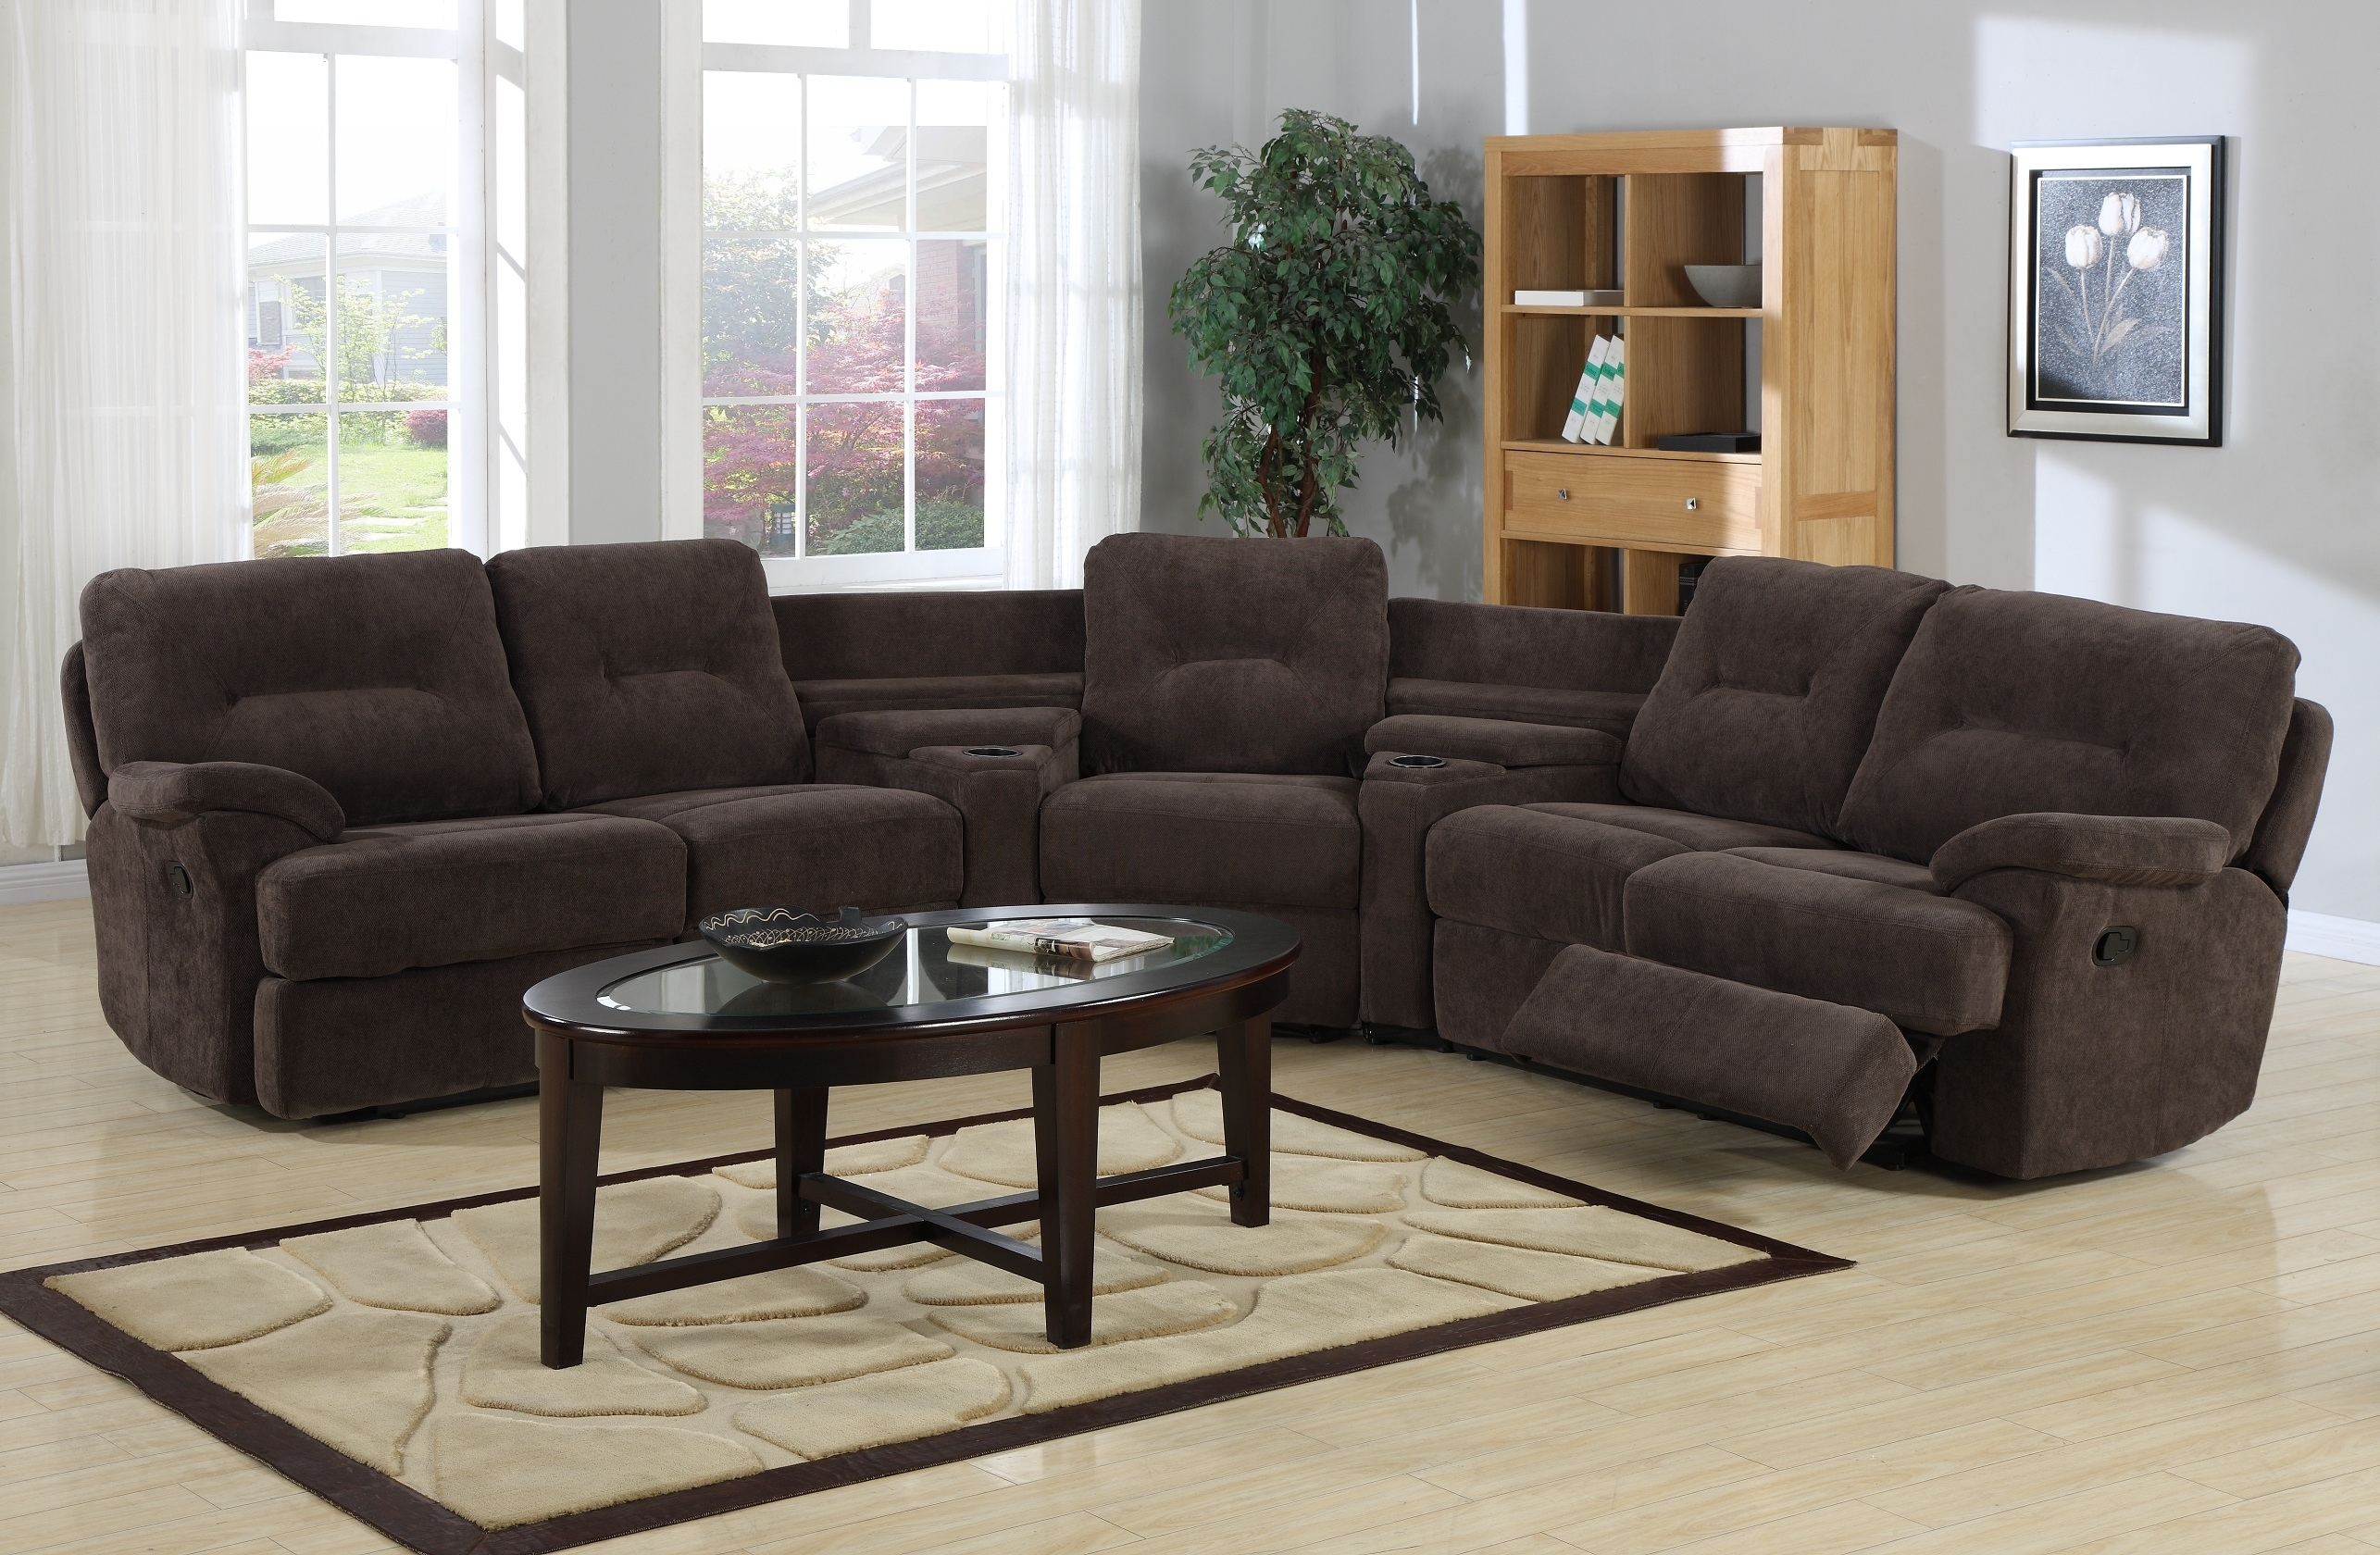 10 Best Collection Of Curved Recliner Sofas Sofa Ideas